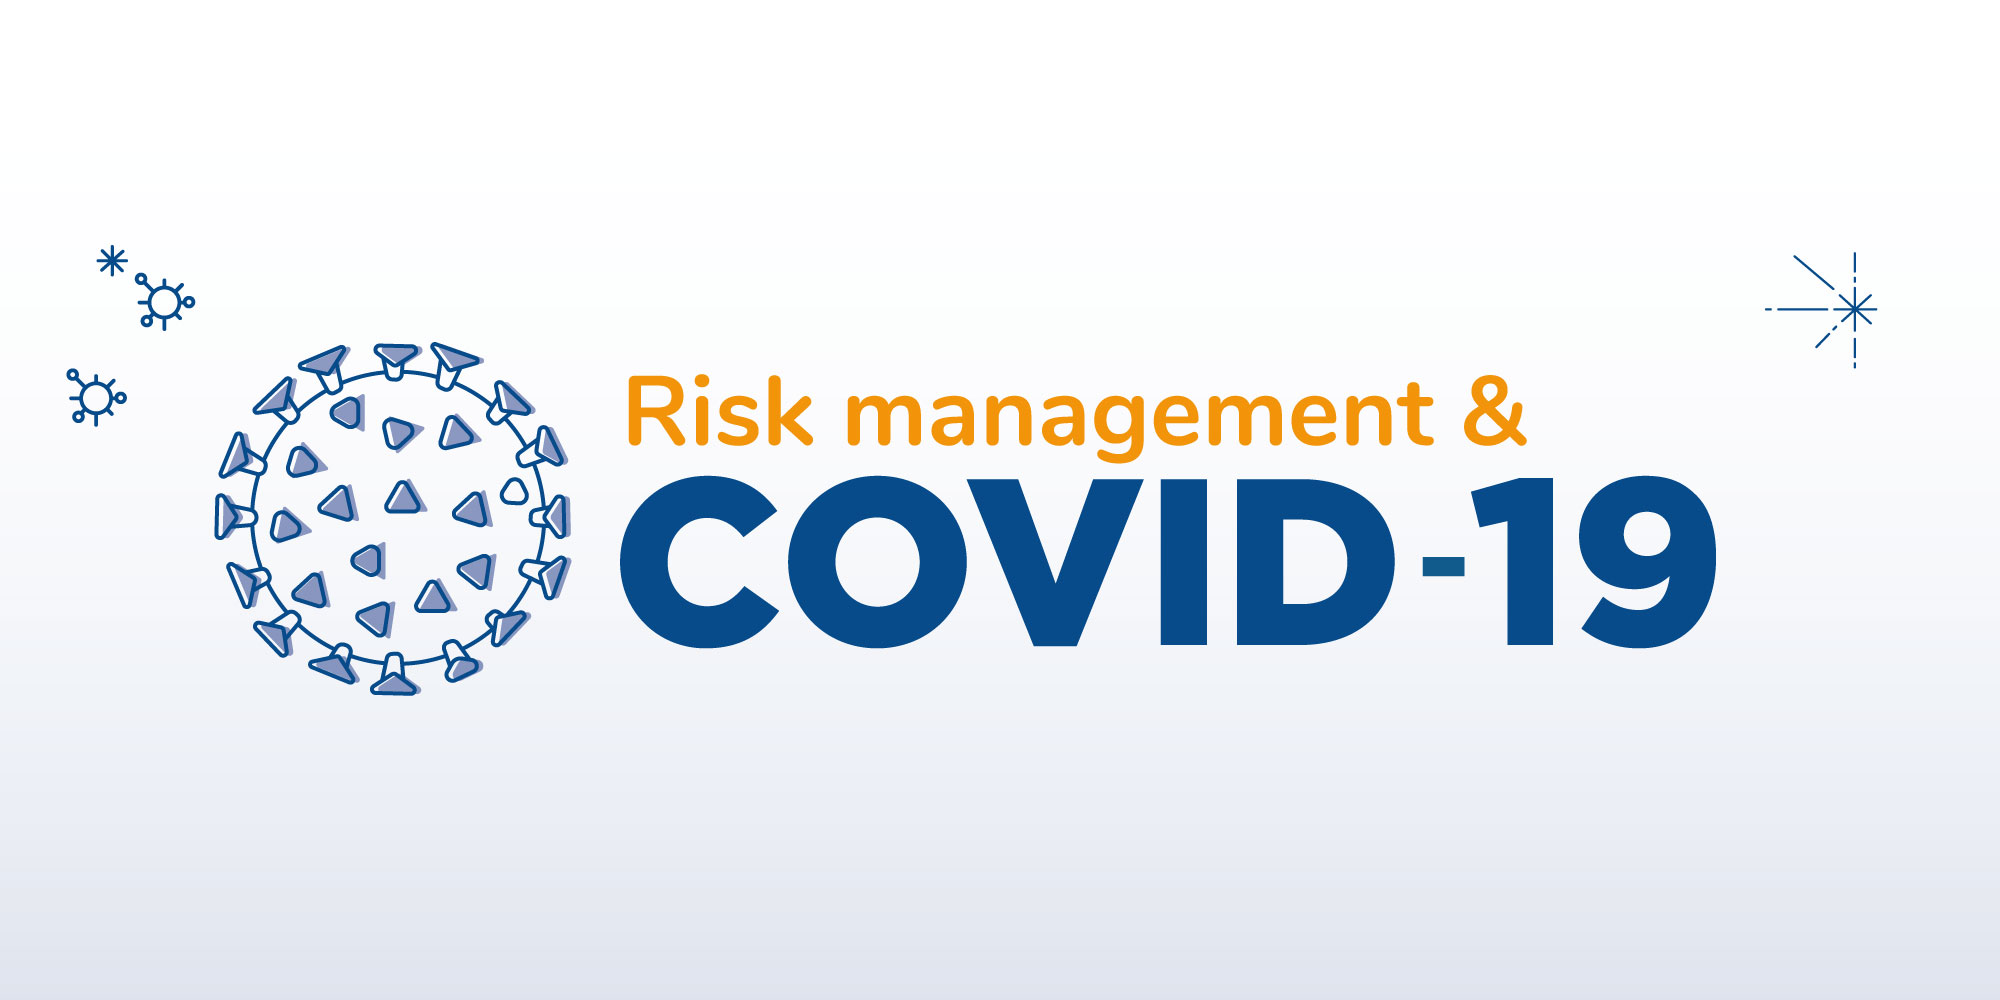 """Risk management & Covid-19"" program"